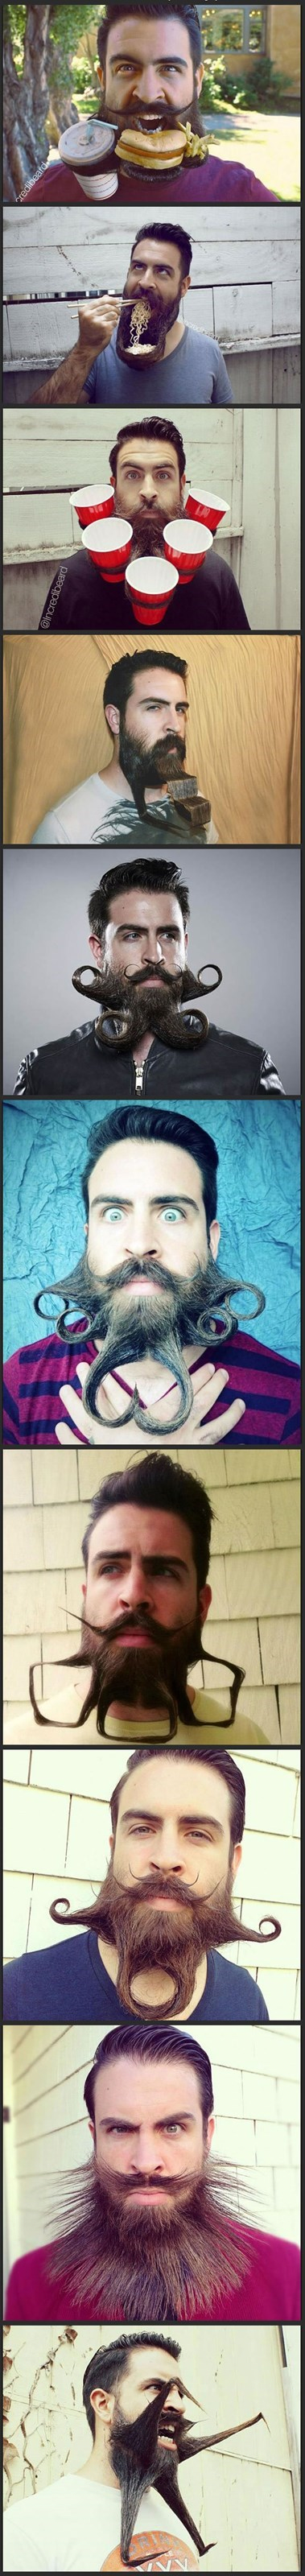 beard facial hair manly funny g rated win - 7886202880